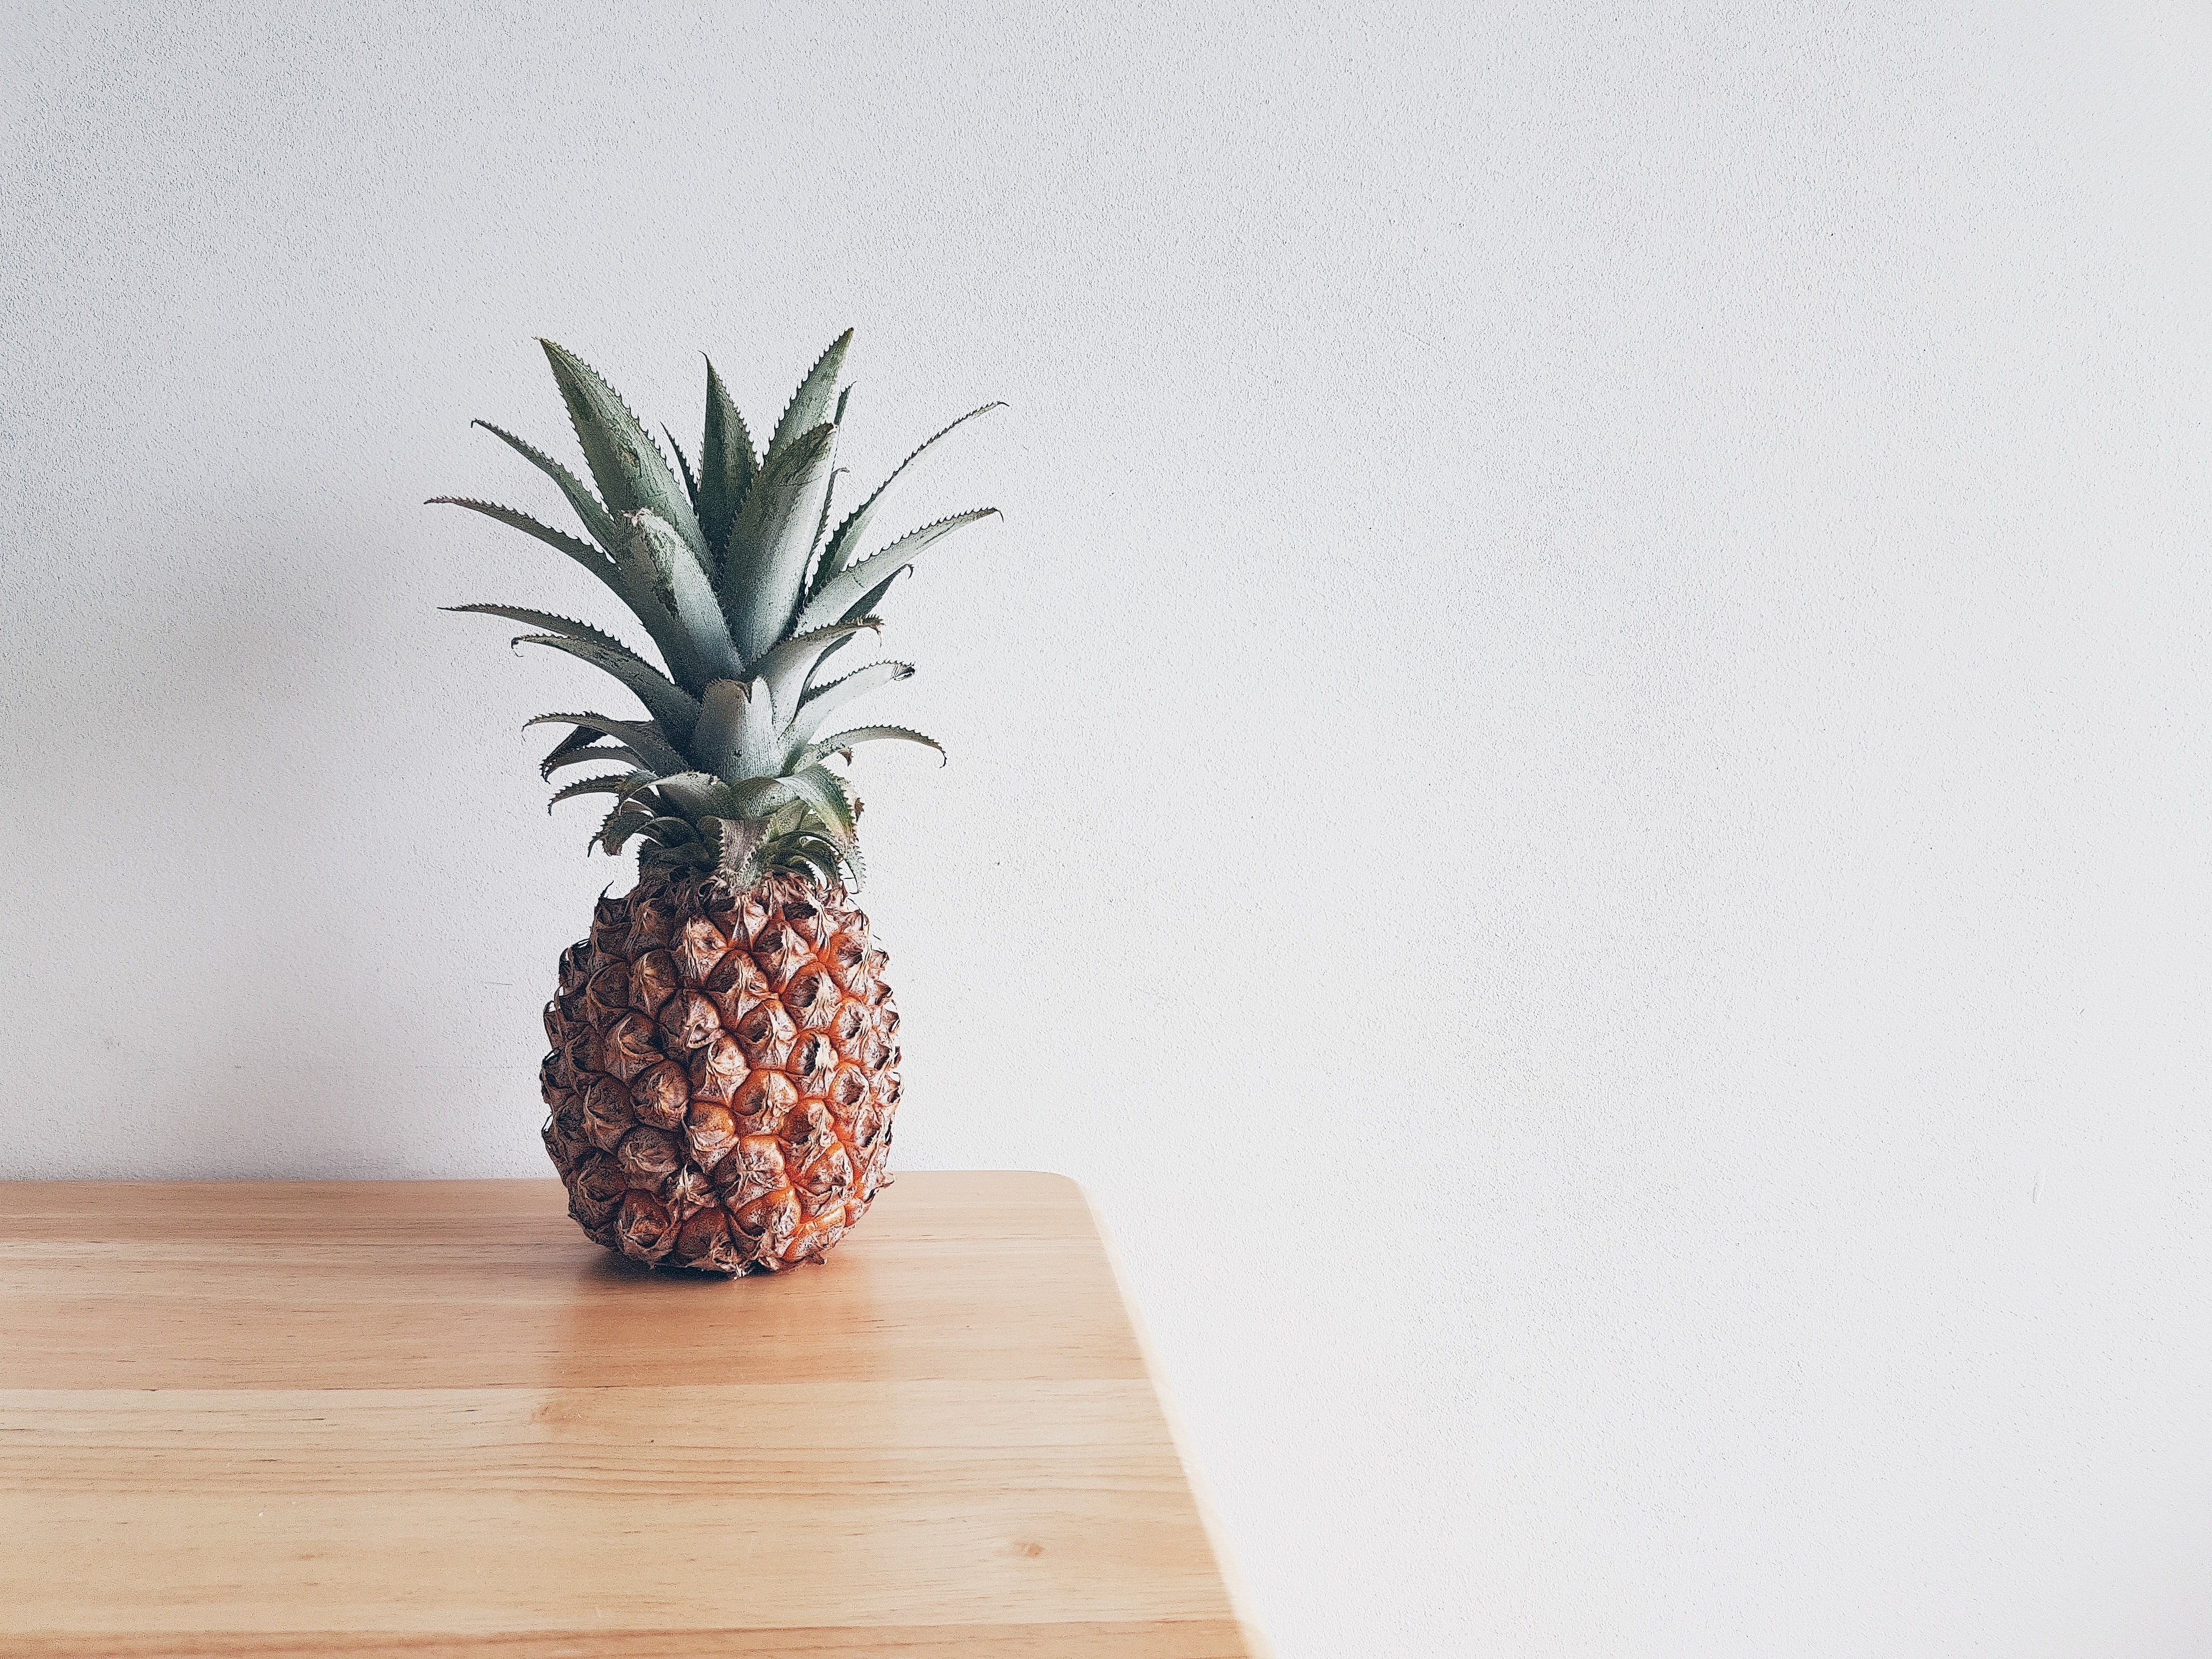 pineapple on beige wooden furniture